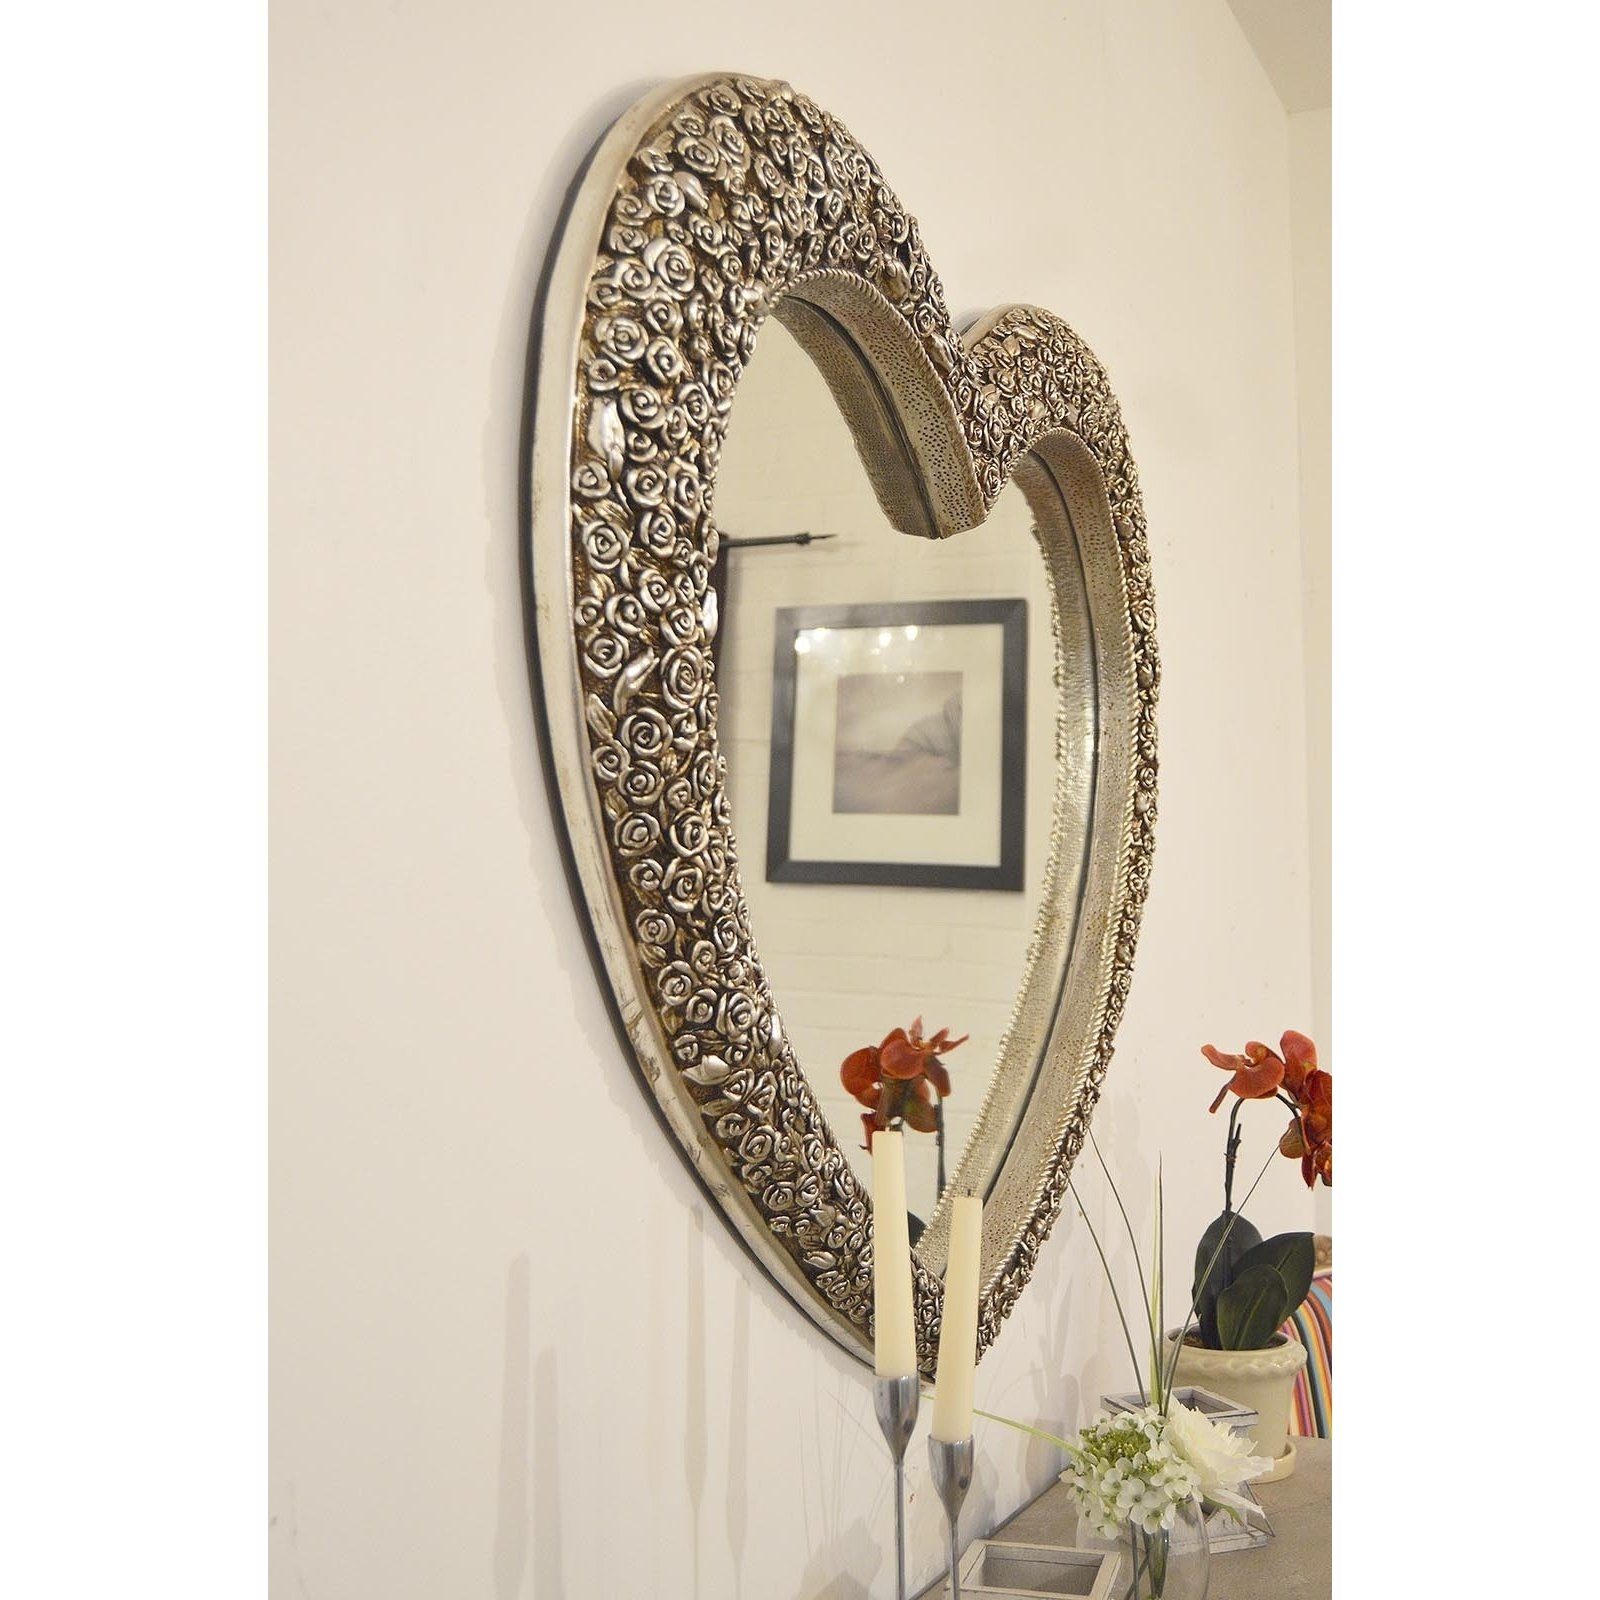 Derrys Rose Heart Wall Mirror Reviews Wayfaircouk With Regard To Heart Wall Mirror (Image 5 of 15)